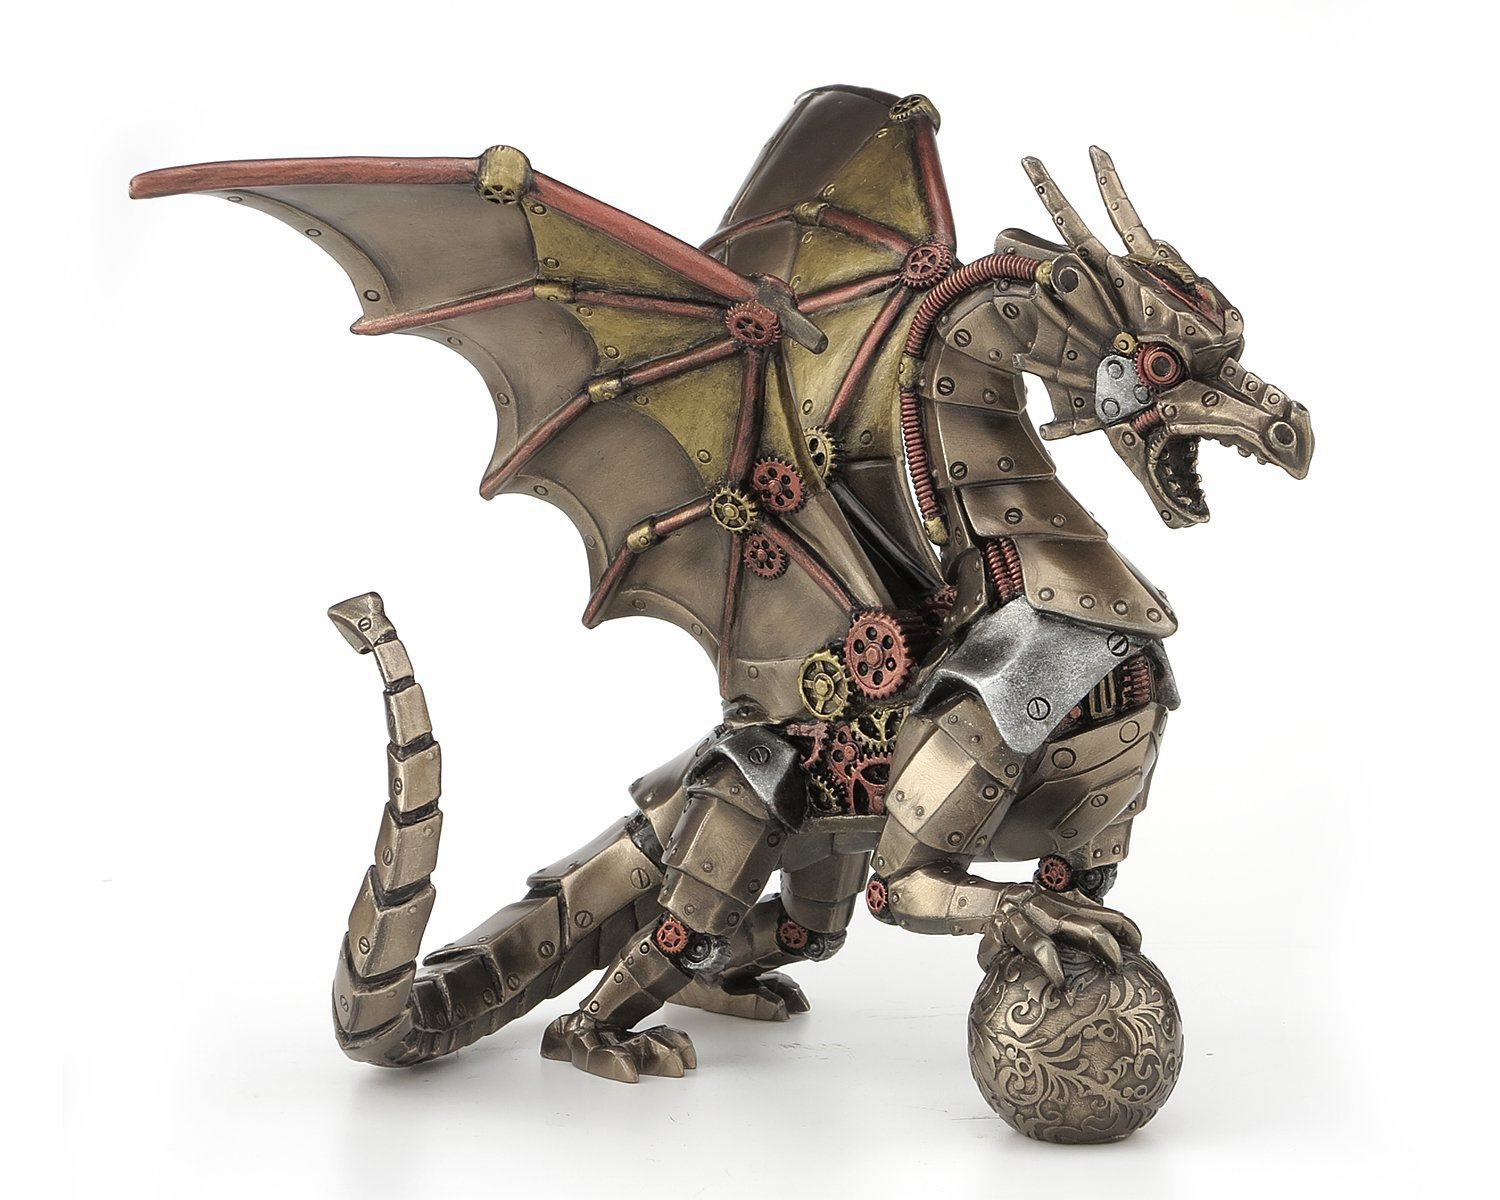 Steampunk Home Decor Ideas Steampunk Dragon With Sphere Figurine Steampunk Gifts